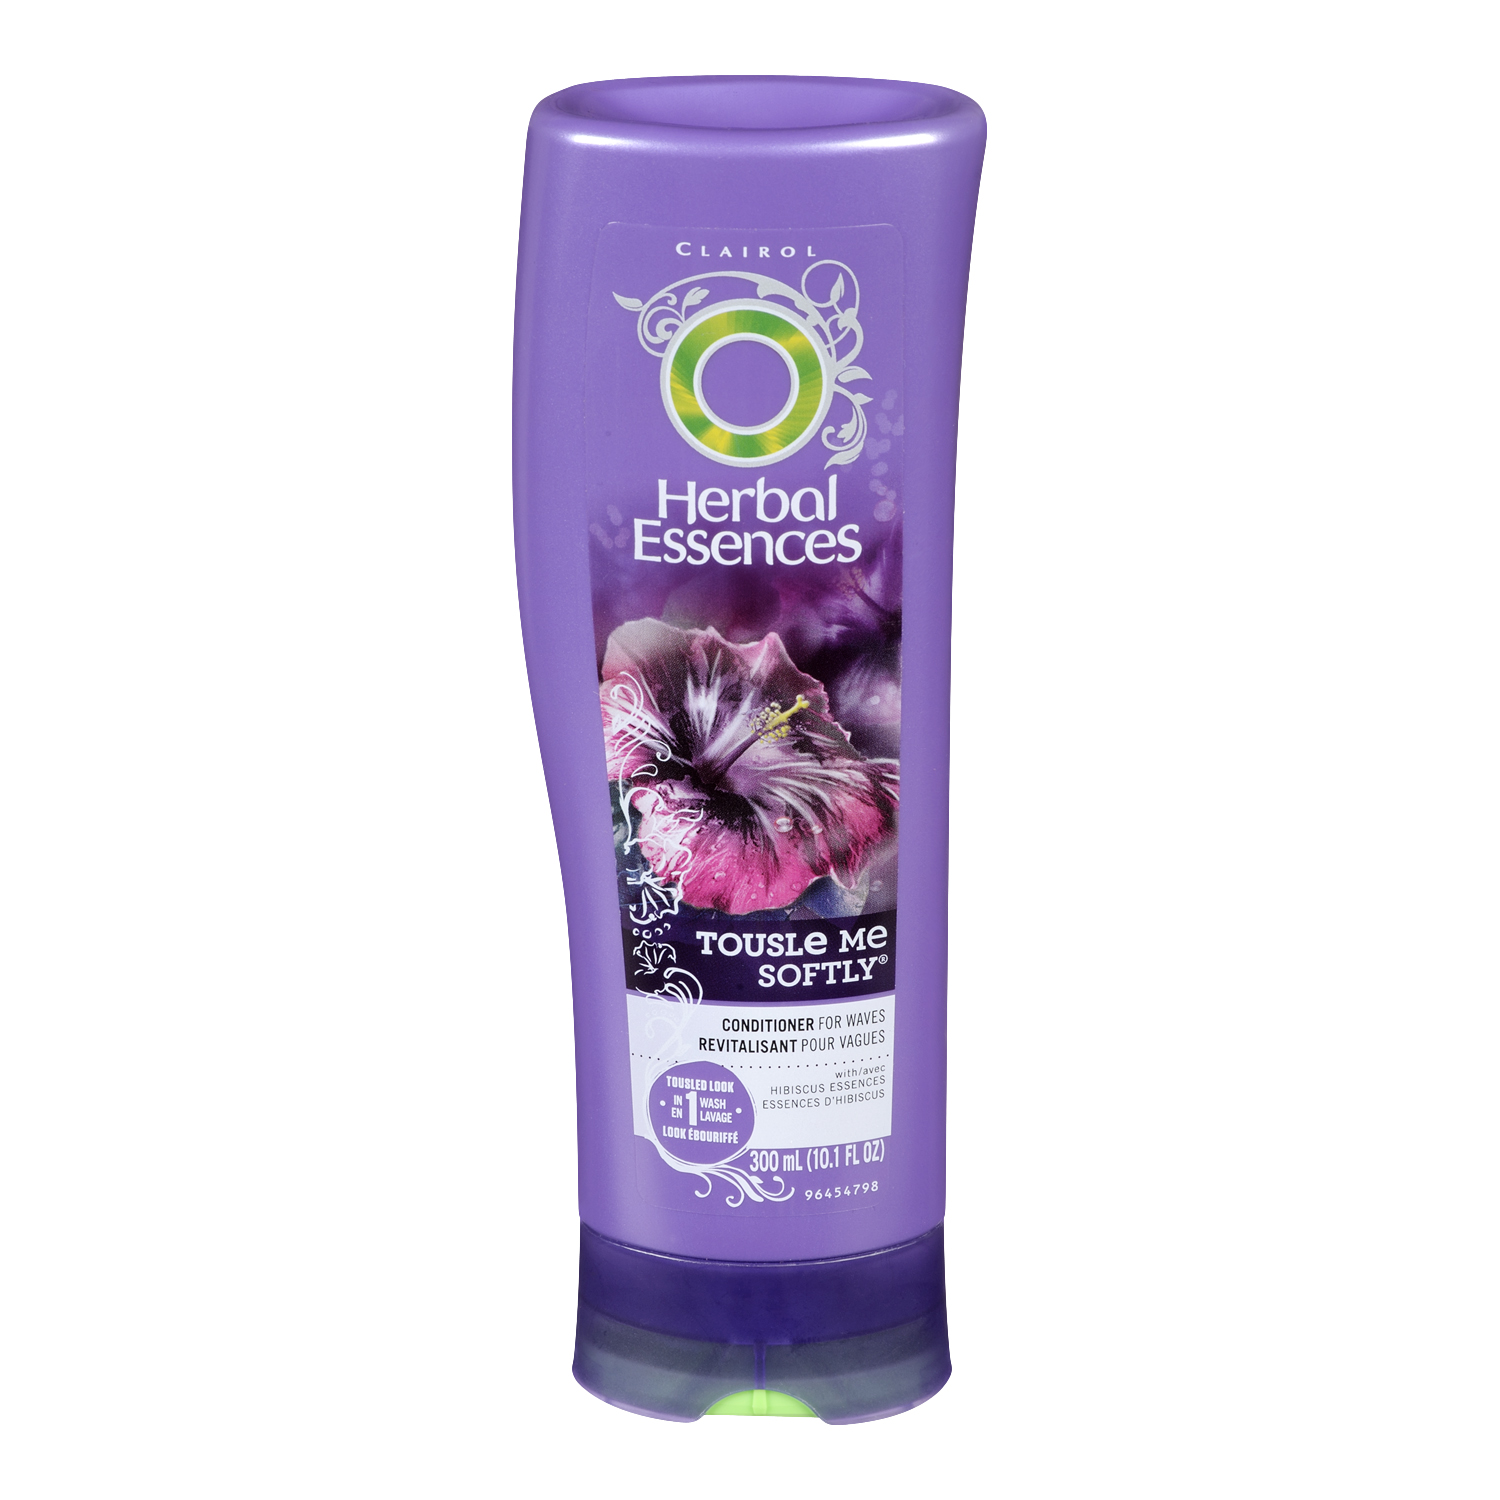 Herbal Essences Tousle Me Softly Conditioner, For Waves, 300 mL